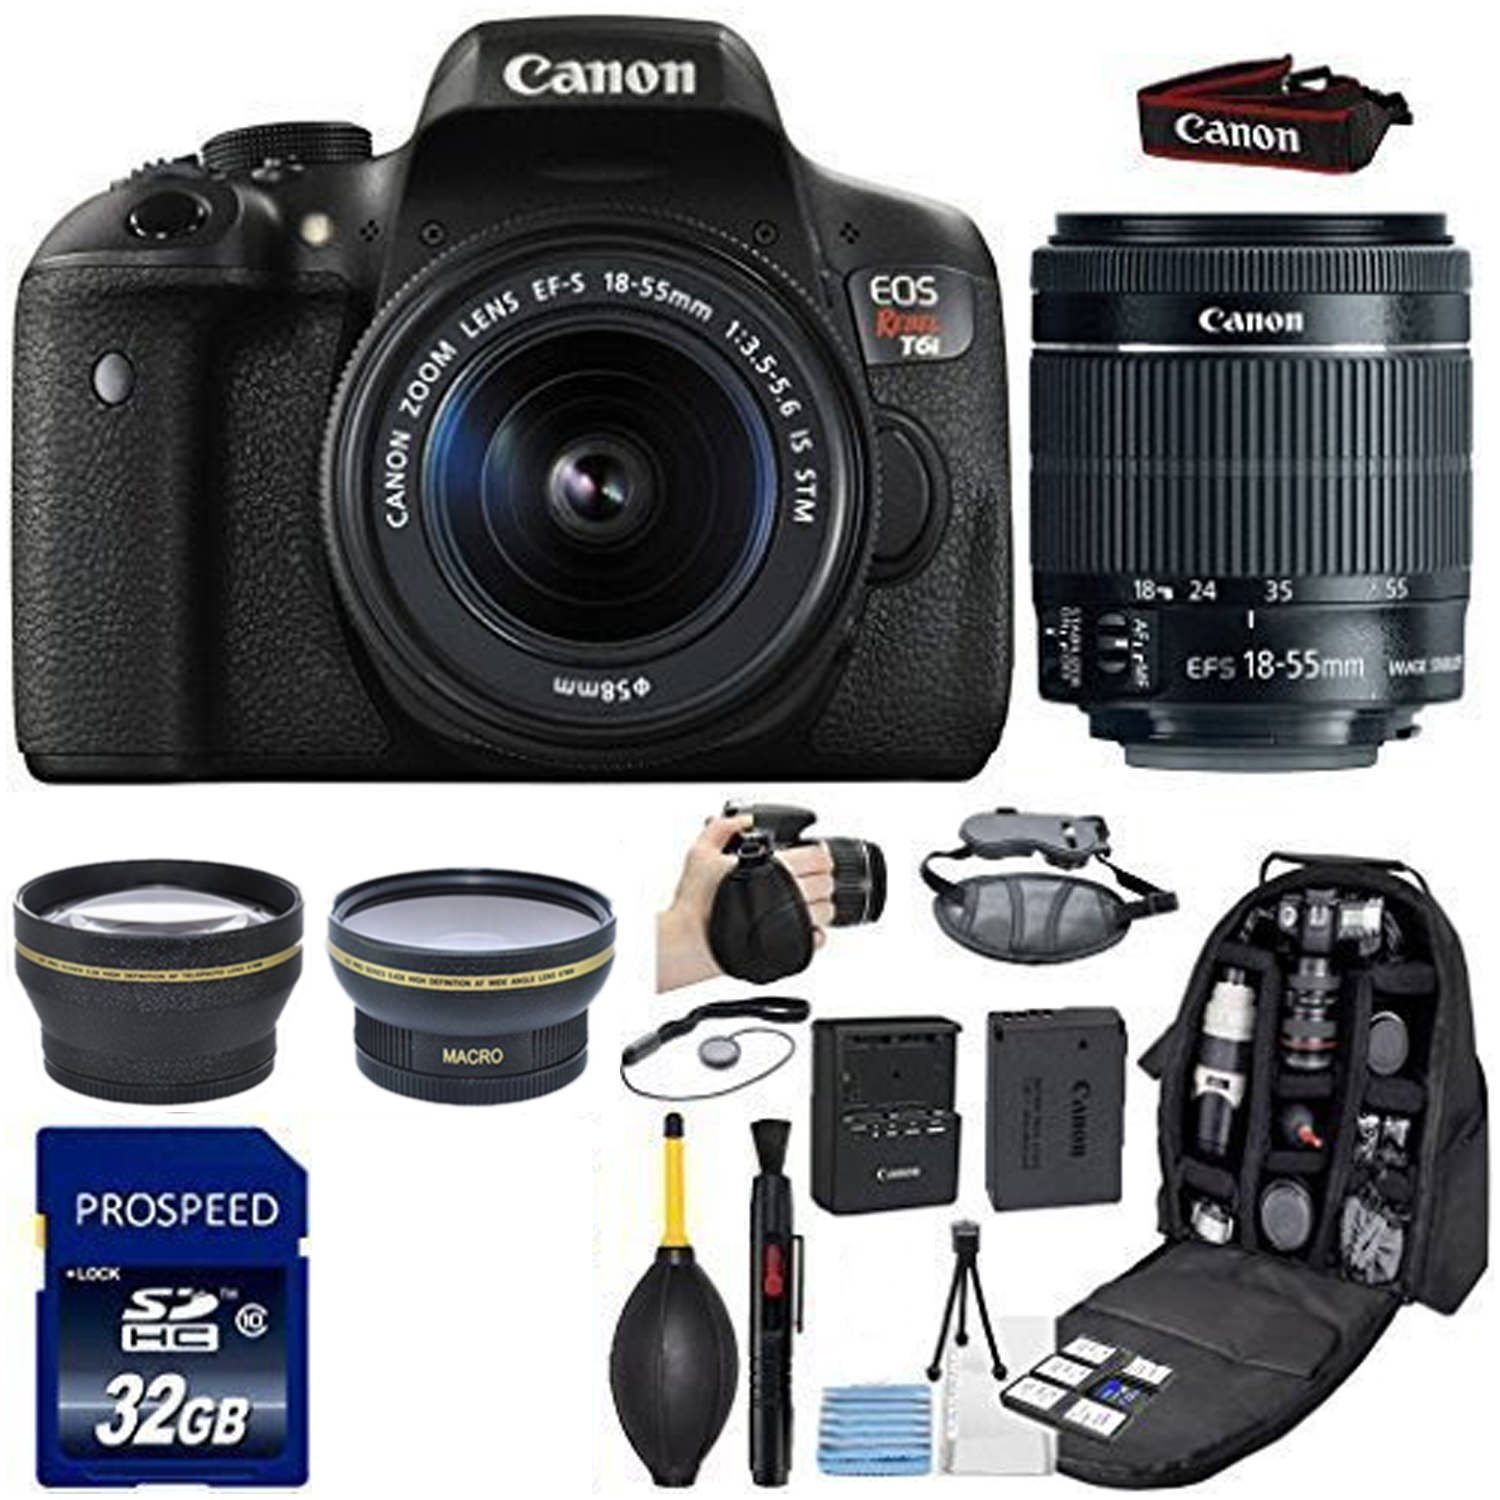 Canon EOS Rebel T6i DSLR Camera with 18-55mm IS STM Lens + Kit Includes 58mm HD Wide Angle + 2.2x Telephoto Lens + SanDisk Ultra 32GB SDHC Class 10 UHS-1 + Backpack Case + Grip Strap + Cleaning Kit by 33th Street